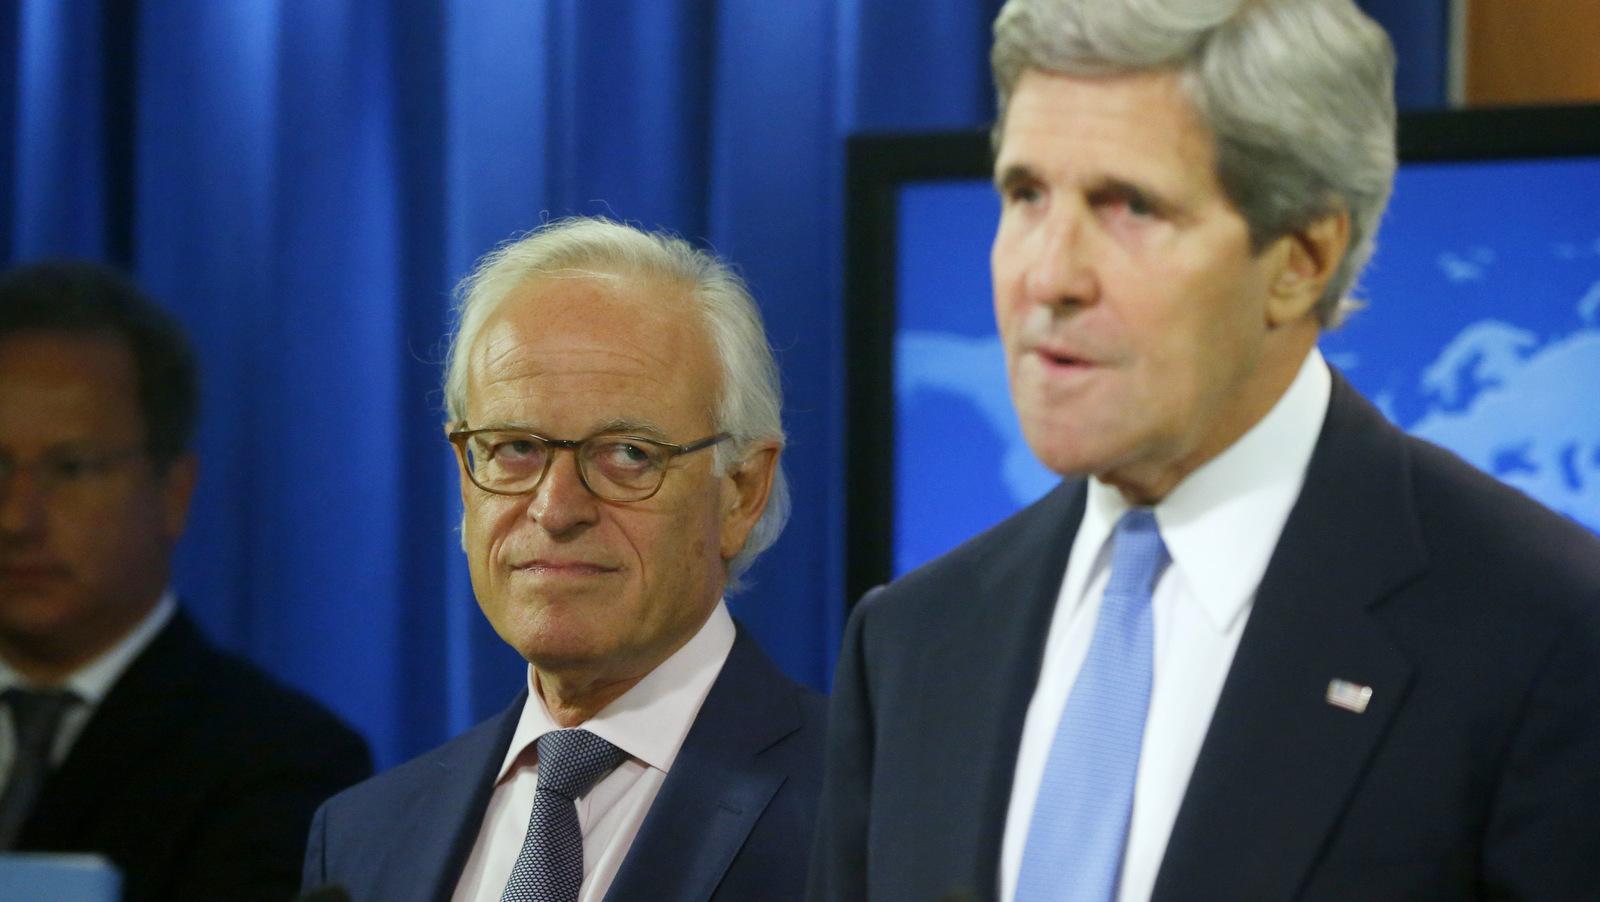 Secretary of State John Kerry stands with former U.S. Ambassador to Israel Martin Indyk at the State Department as he announces that Indyk will shepherd the Israeli Palestinian peace talks beginning in Washington, Monday, July 29, 2013. (AP Photo/Charles Dharapak)